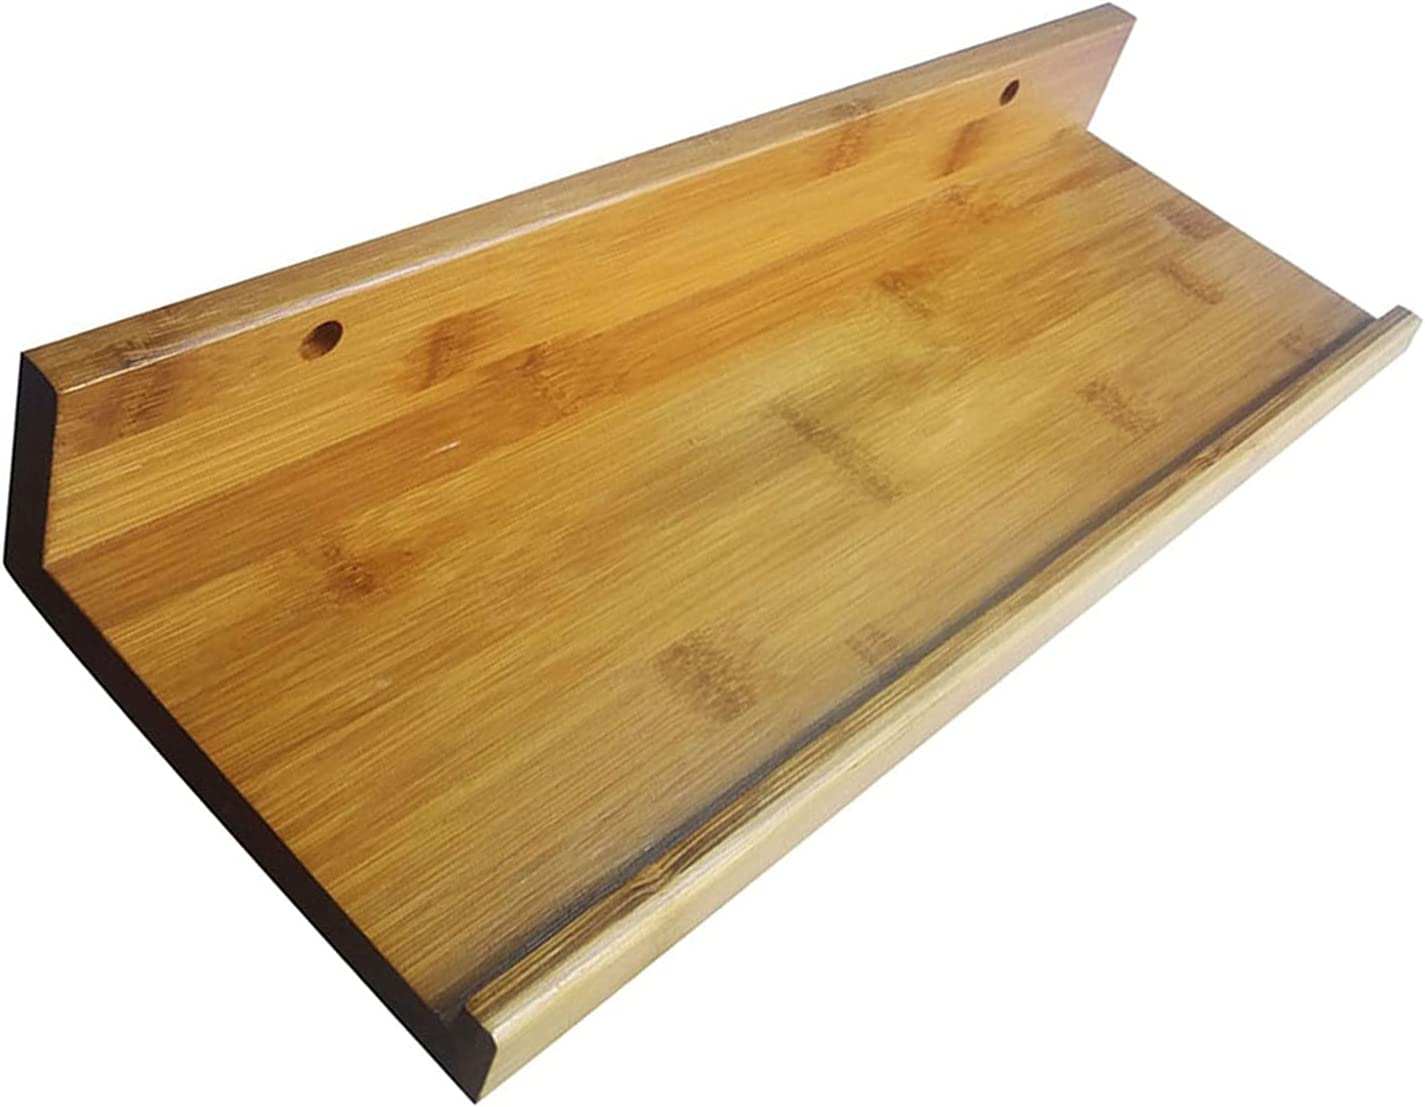 Great Charlotte Mall dreamer sold out Oak Floating Shelves - Wall Sh Rustic Mounted